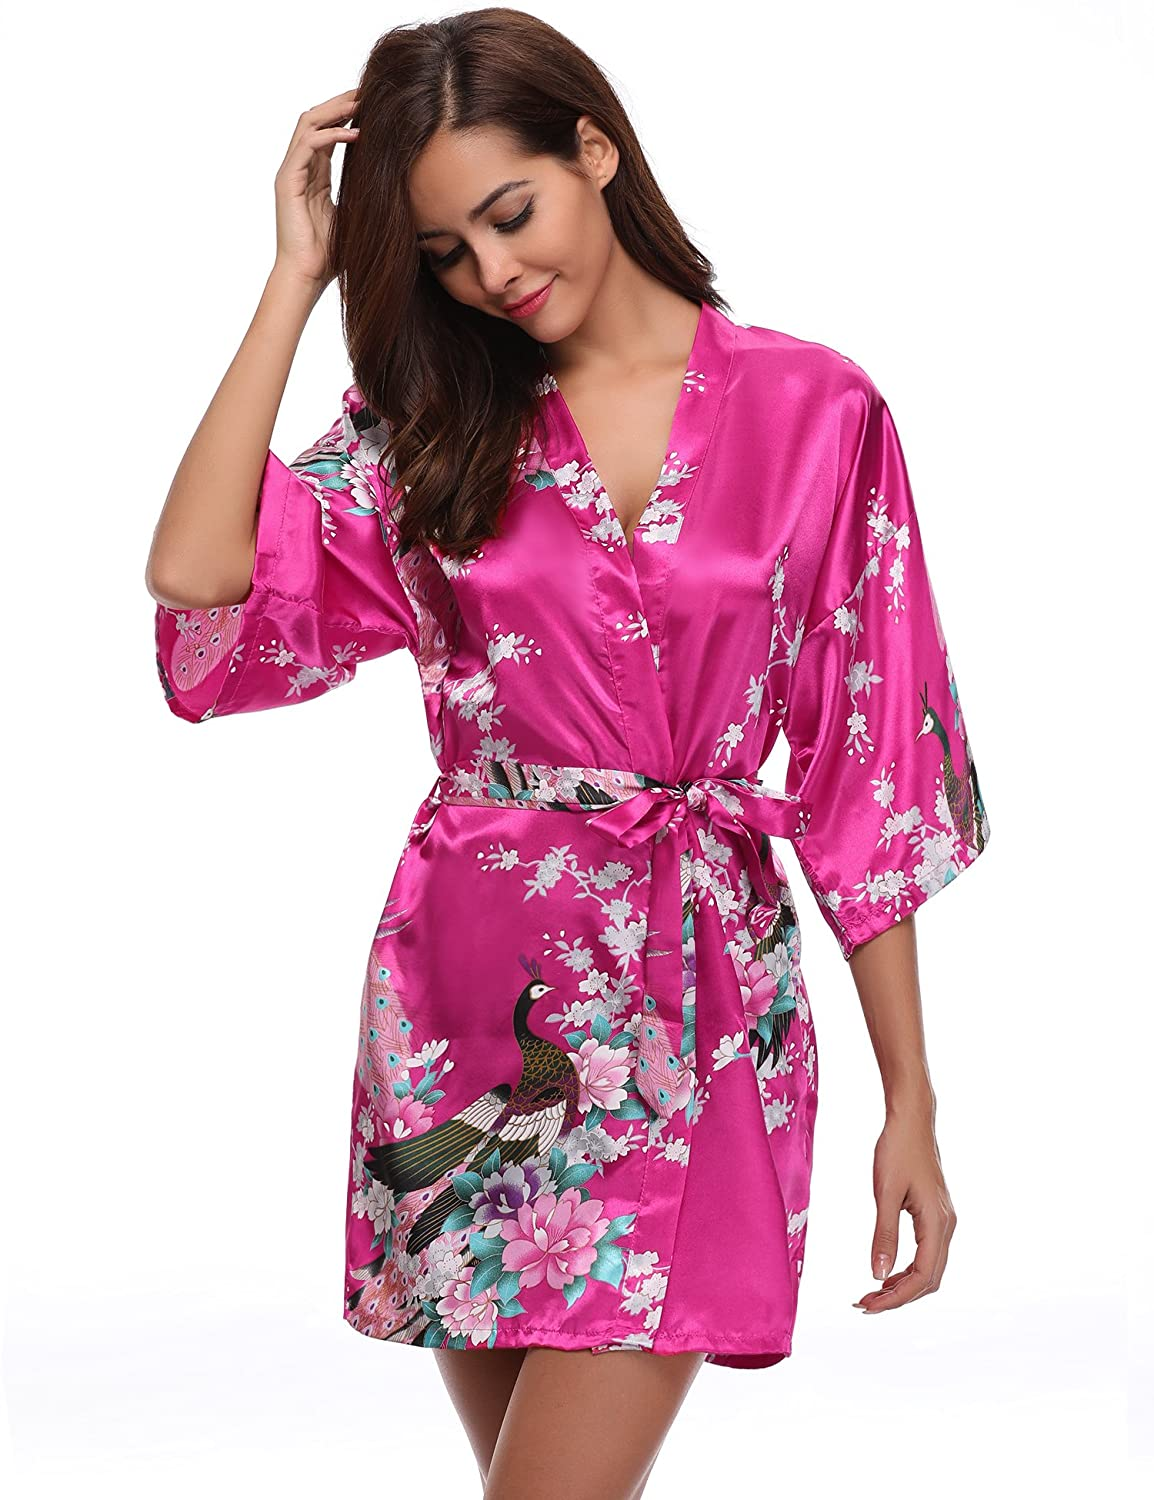 Aibrou Womens Bridesmaid Robes Short Peacock Blossoms Silk Stain Kimono Robe Dressing Gown am16062402